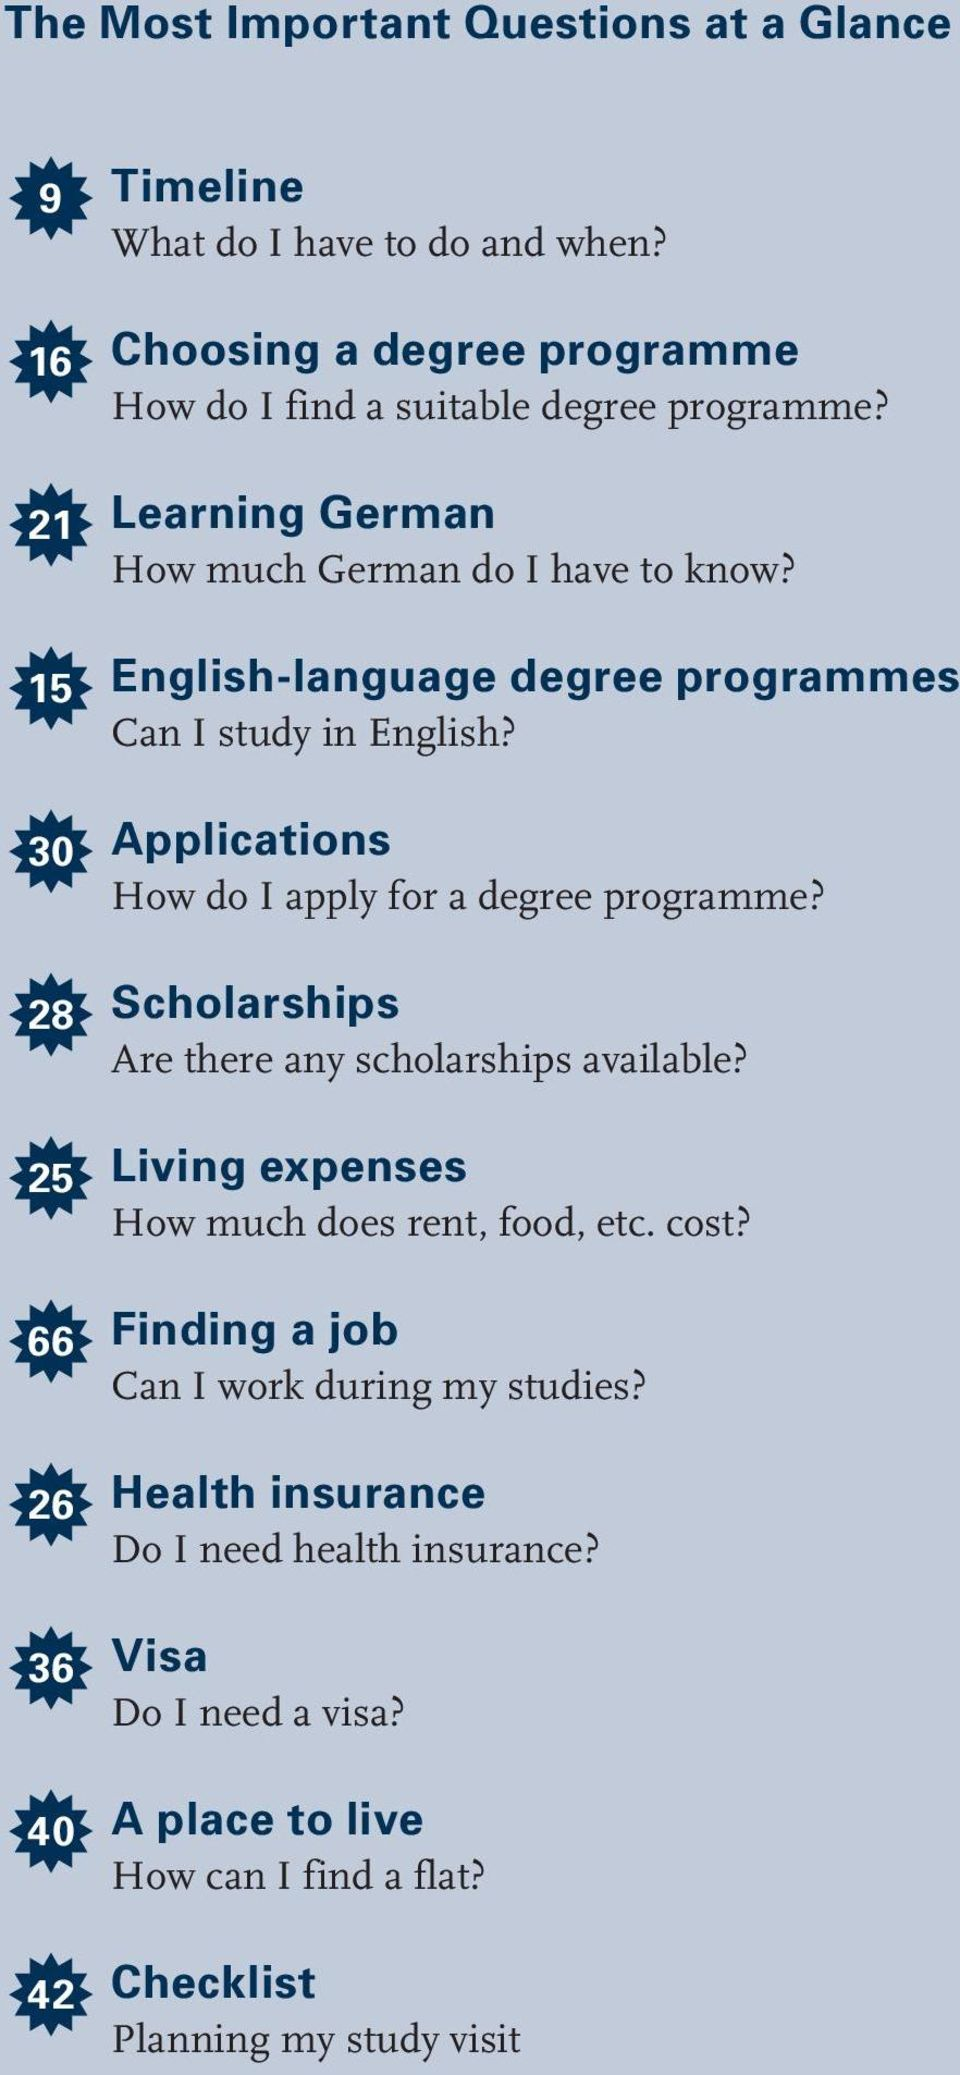 English-language degree programmes Can I study in English? 30 ƒ Applications How do I apply for a degree programme?